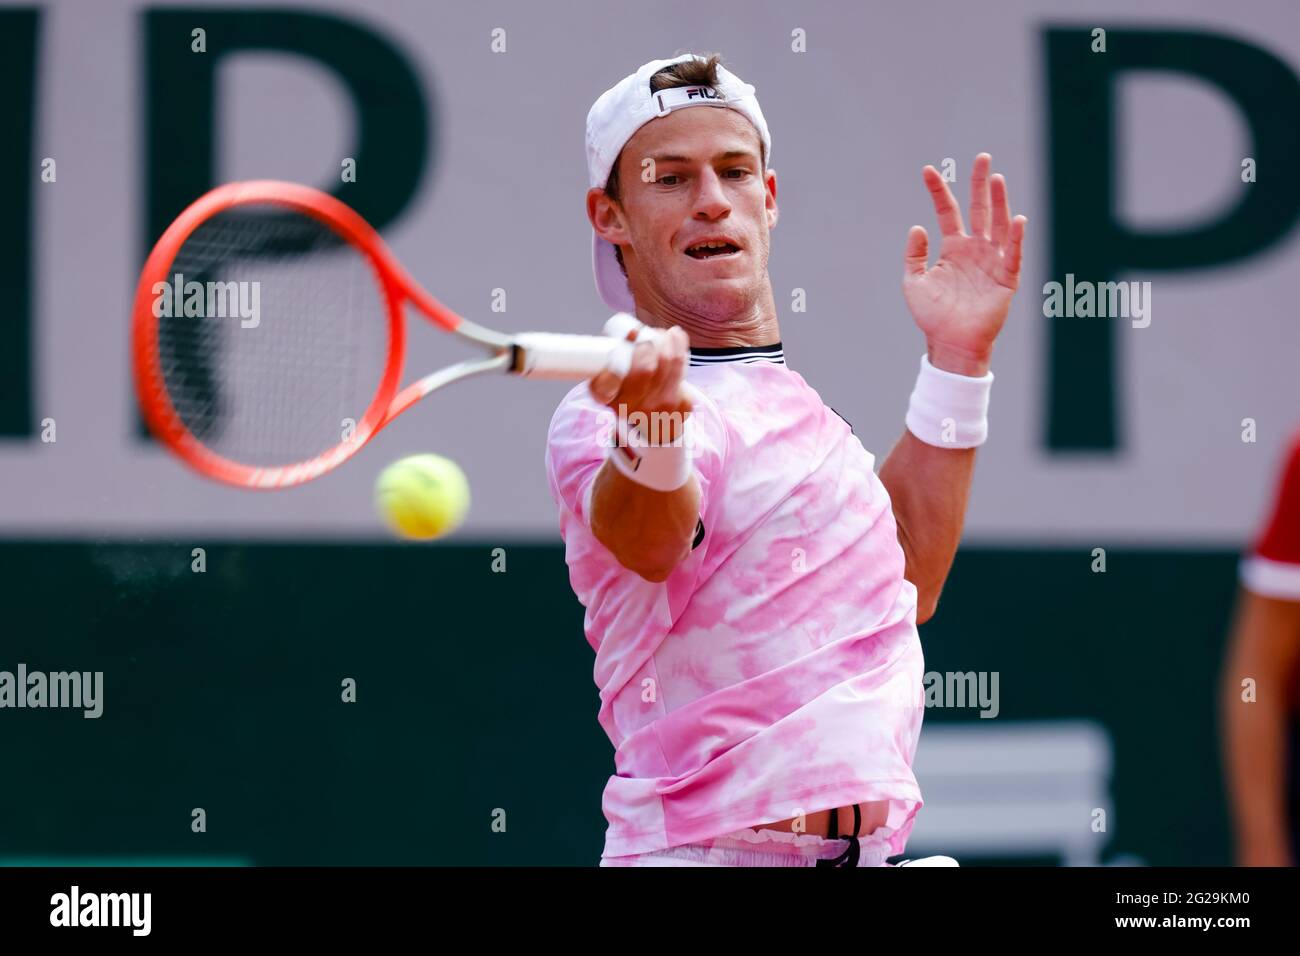 Paris, France. 9th June, 2021. Diego Schwartzmann from Argentina at the 2021 French Open Grand Slam tennis tournament in Roland Garros, Paris, France. Frank Molter/Alamy Live news Stock Photo